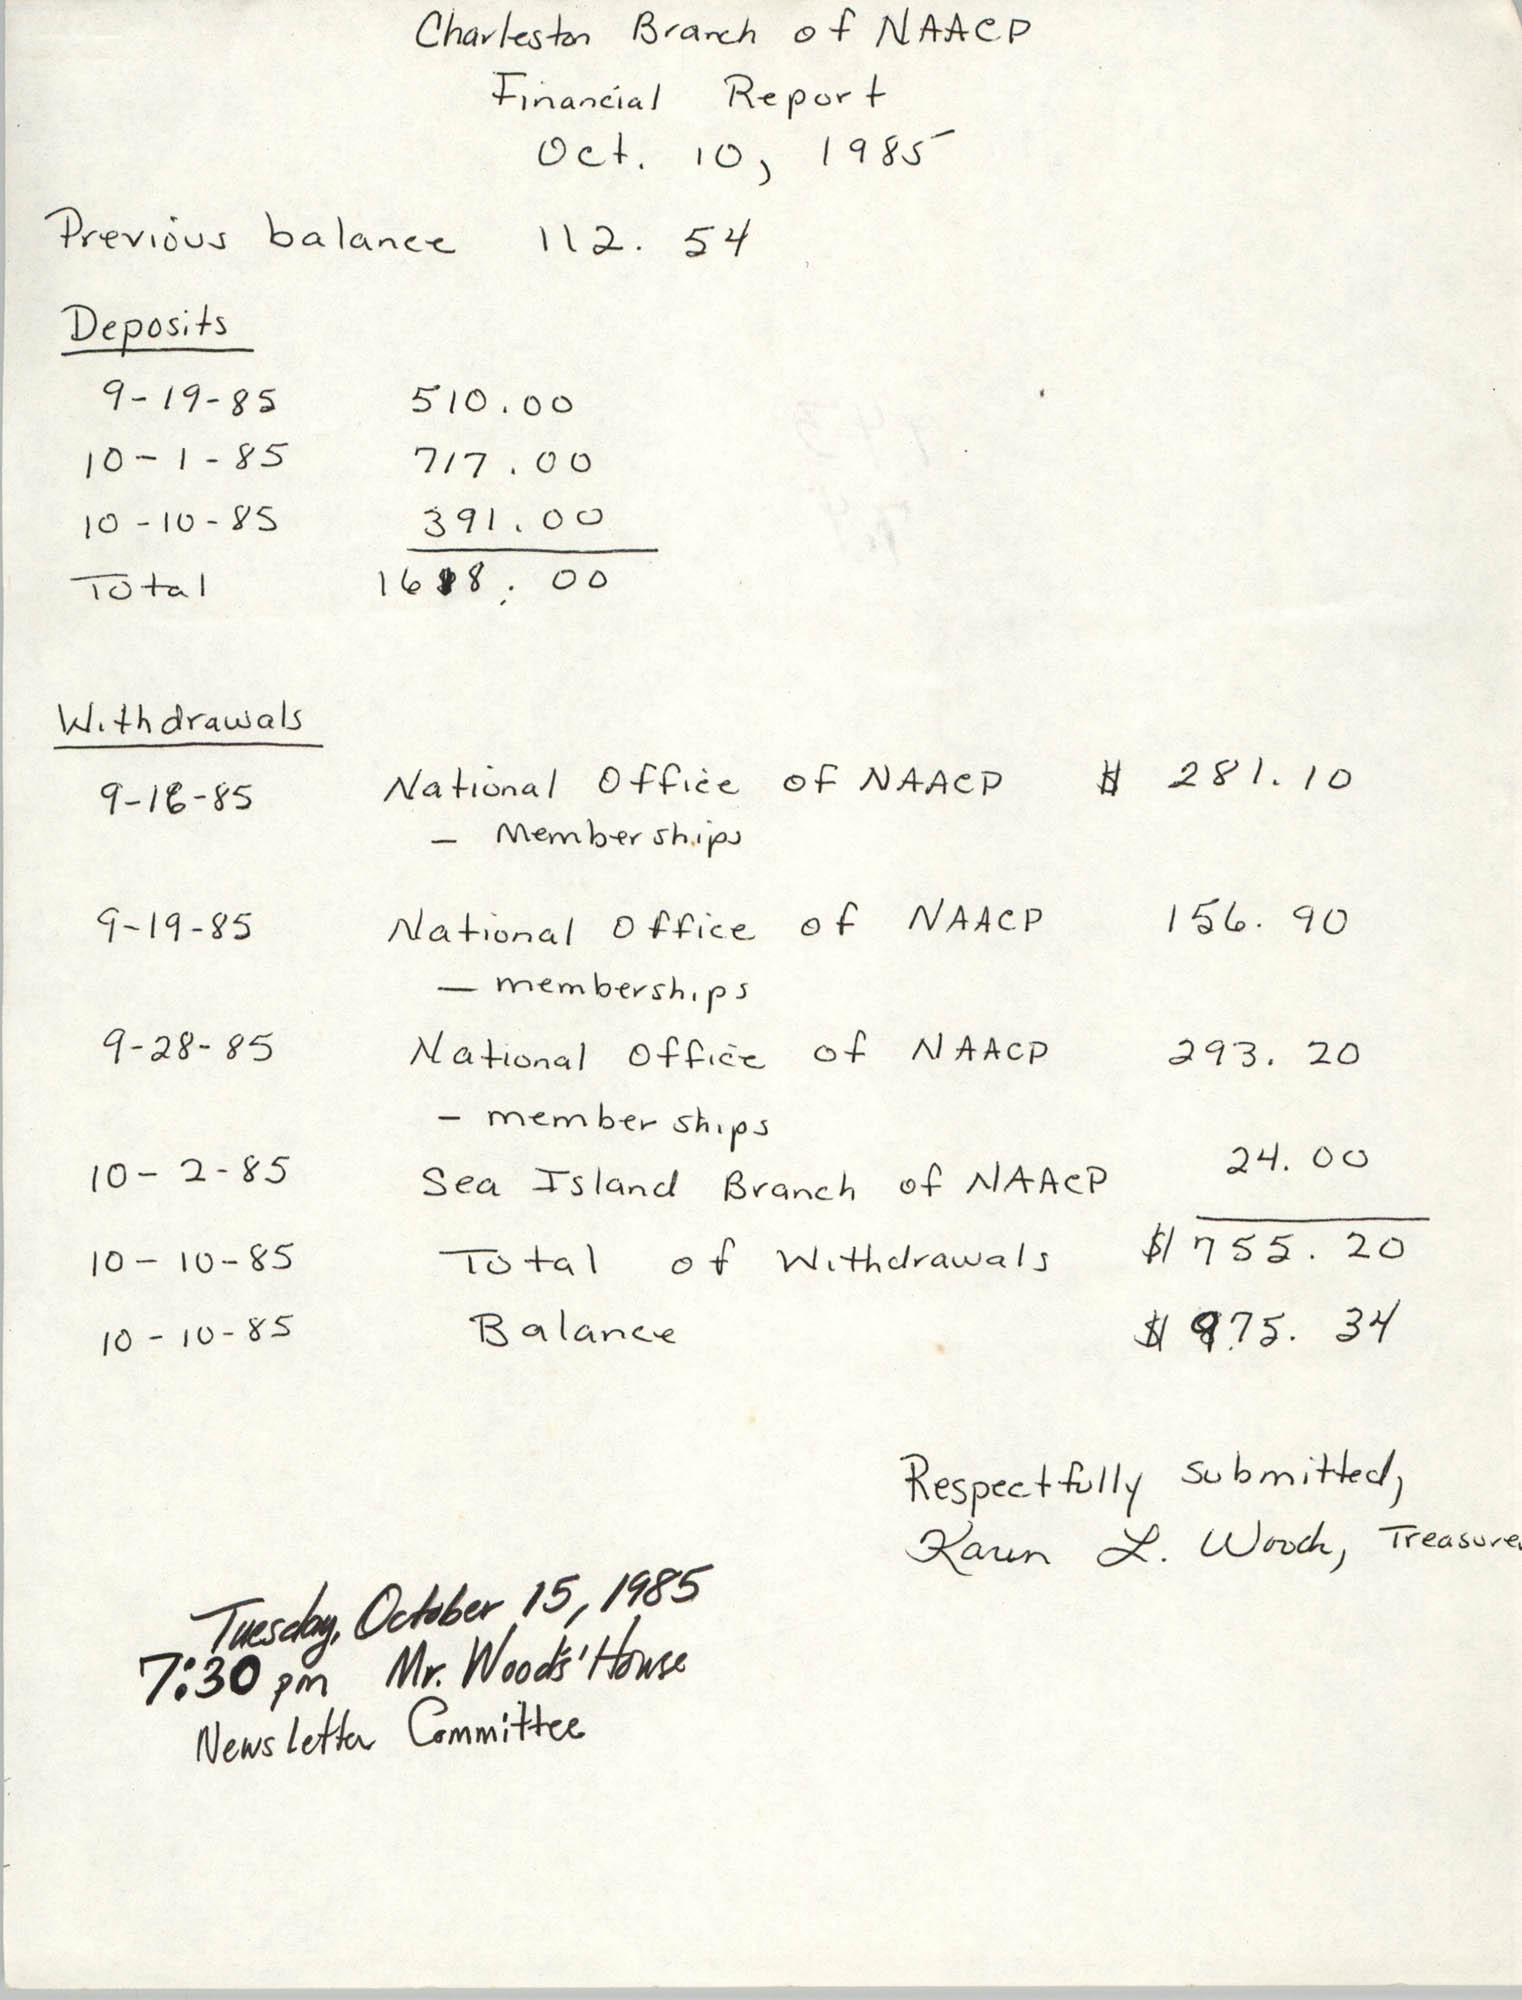 Charleston Branch of the NAACP Financial Report, October 10, 1985